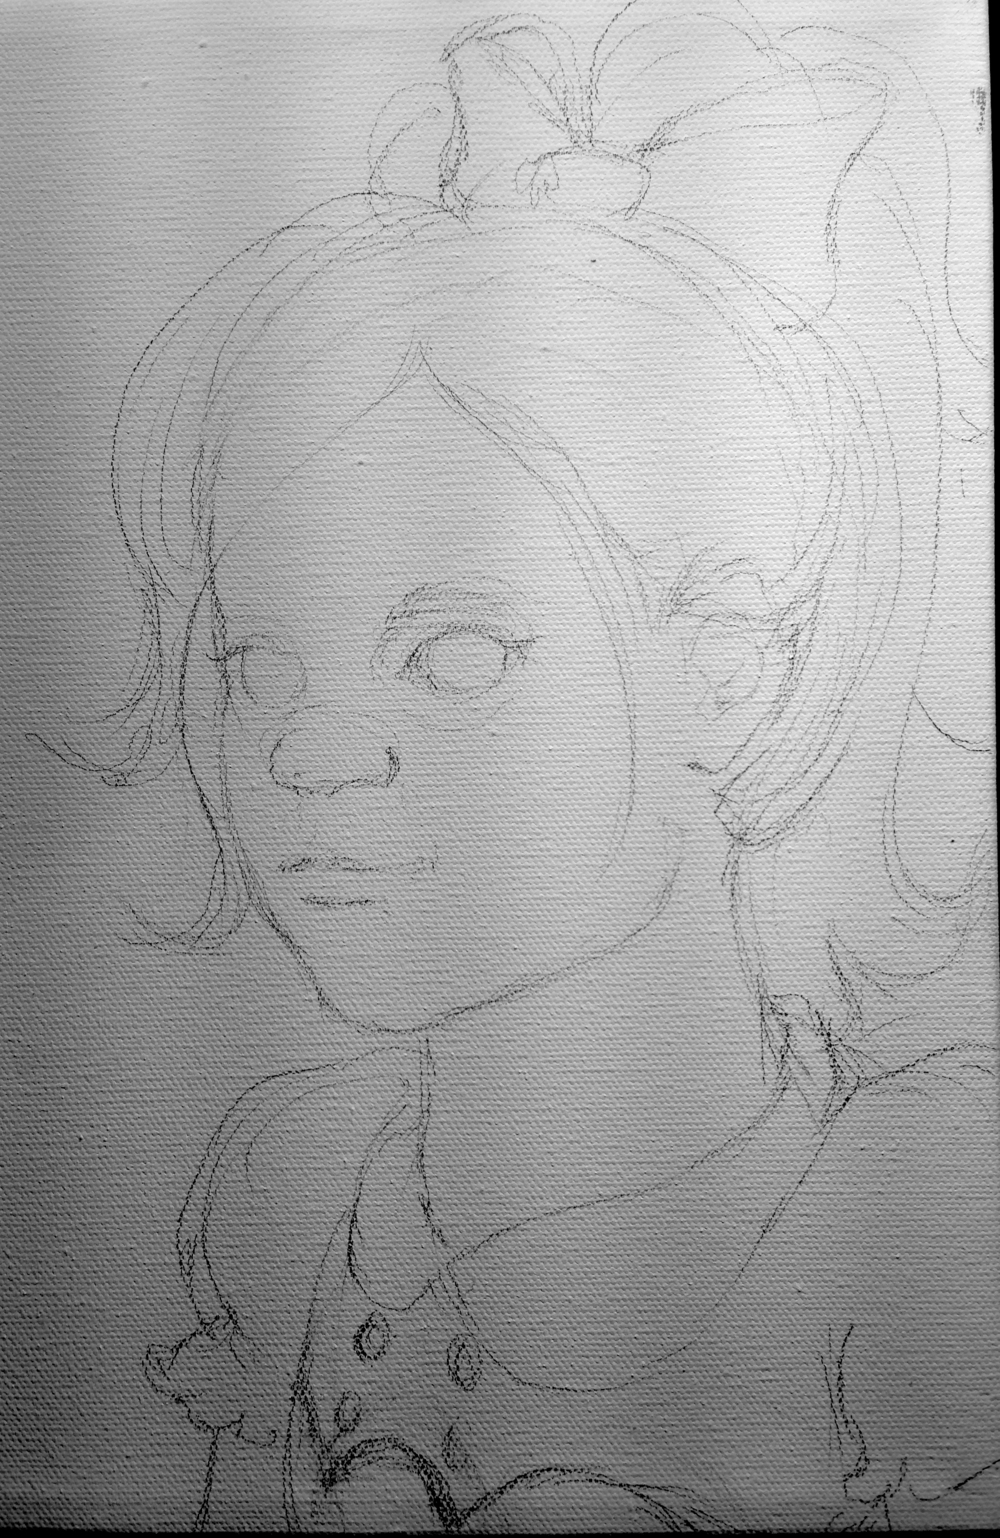 Sketch for a painting of a Little Sister from Bioshock.